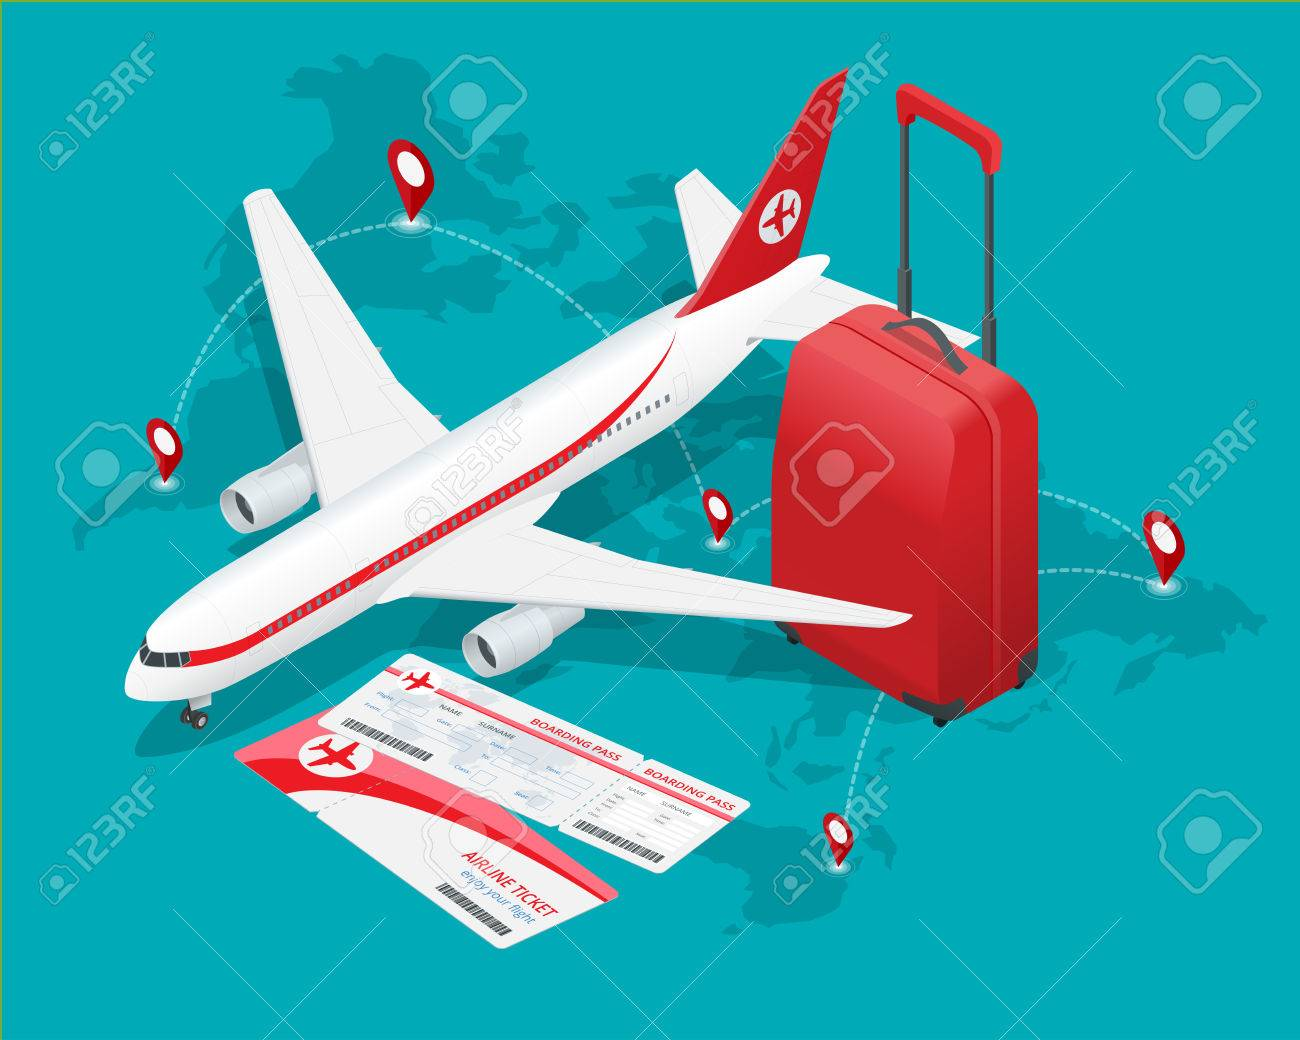 Travel isometric composition. Travel and tourism background. Flat 3d Vector illustration. Travel banner design. - 54104376